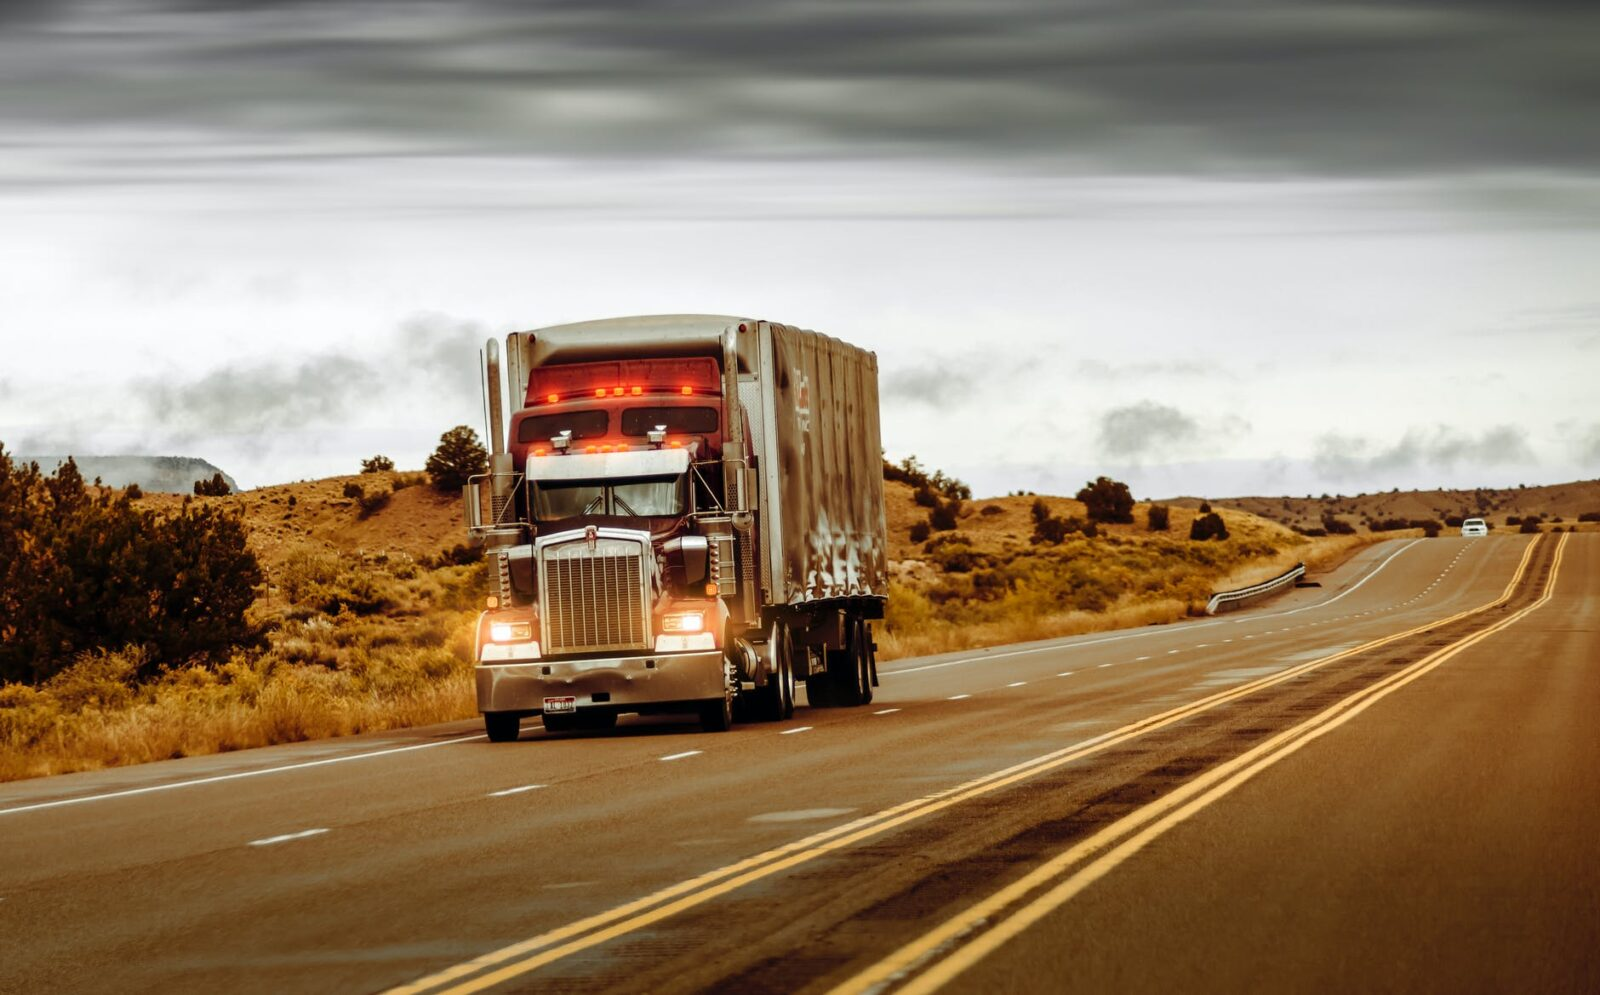 Future role of artificial intelligence in logistics and transportation